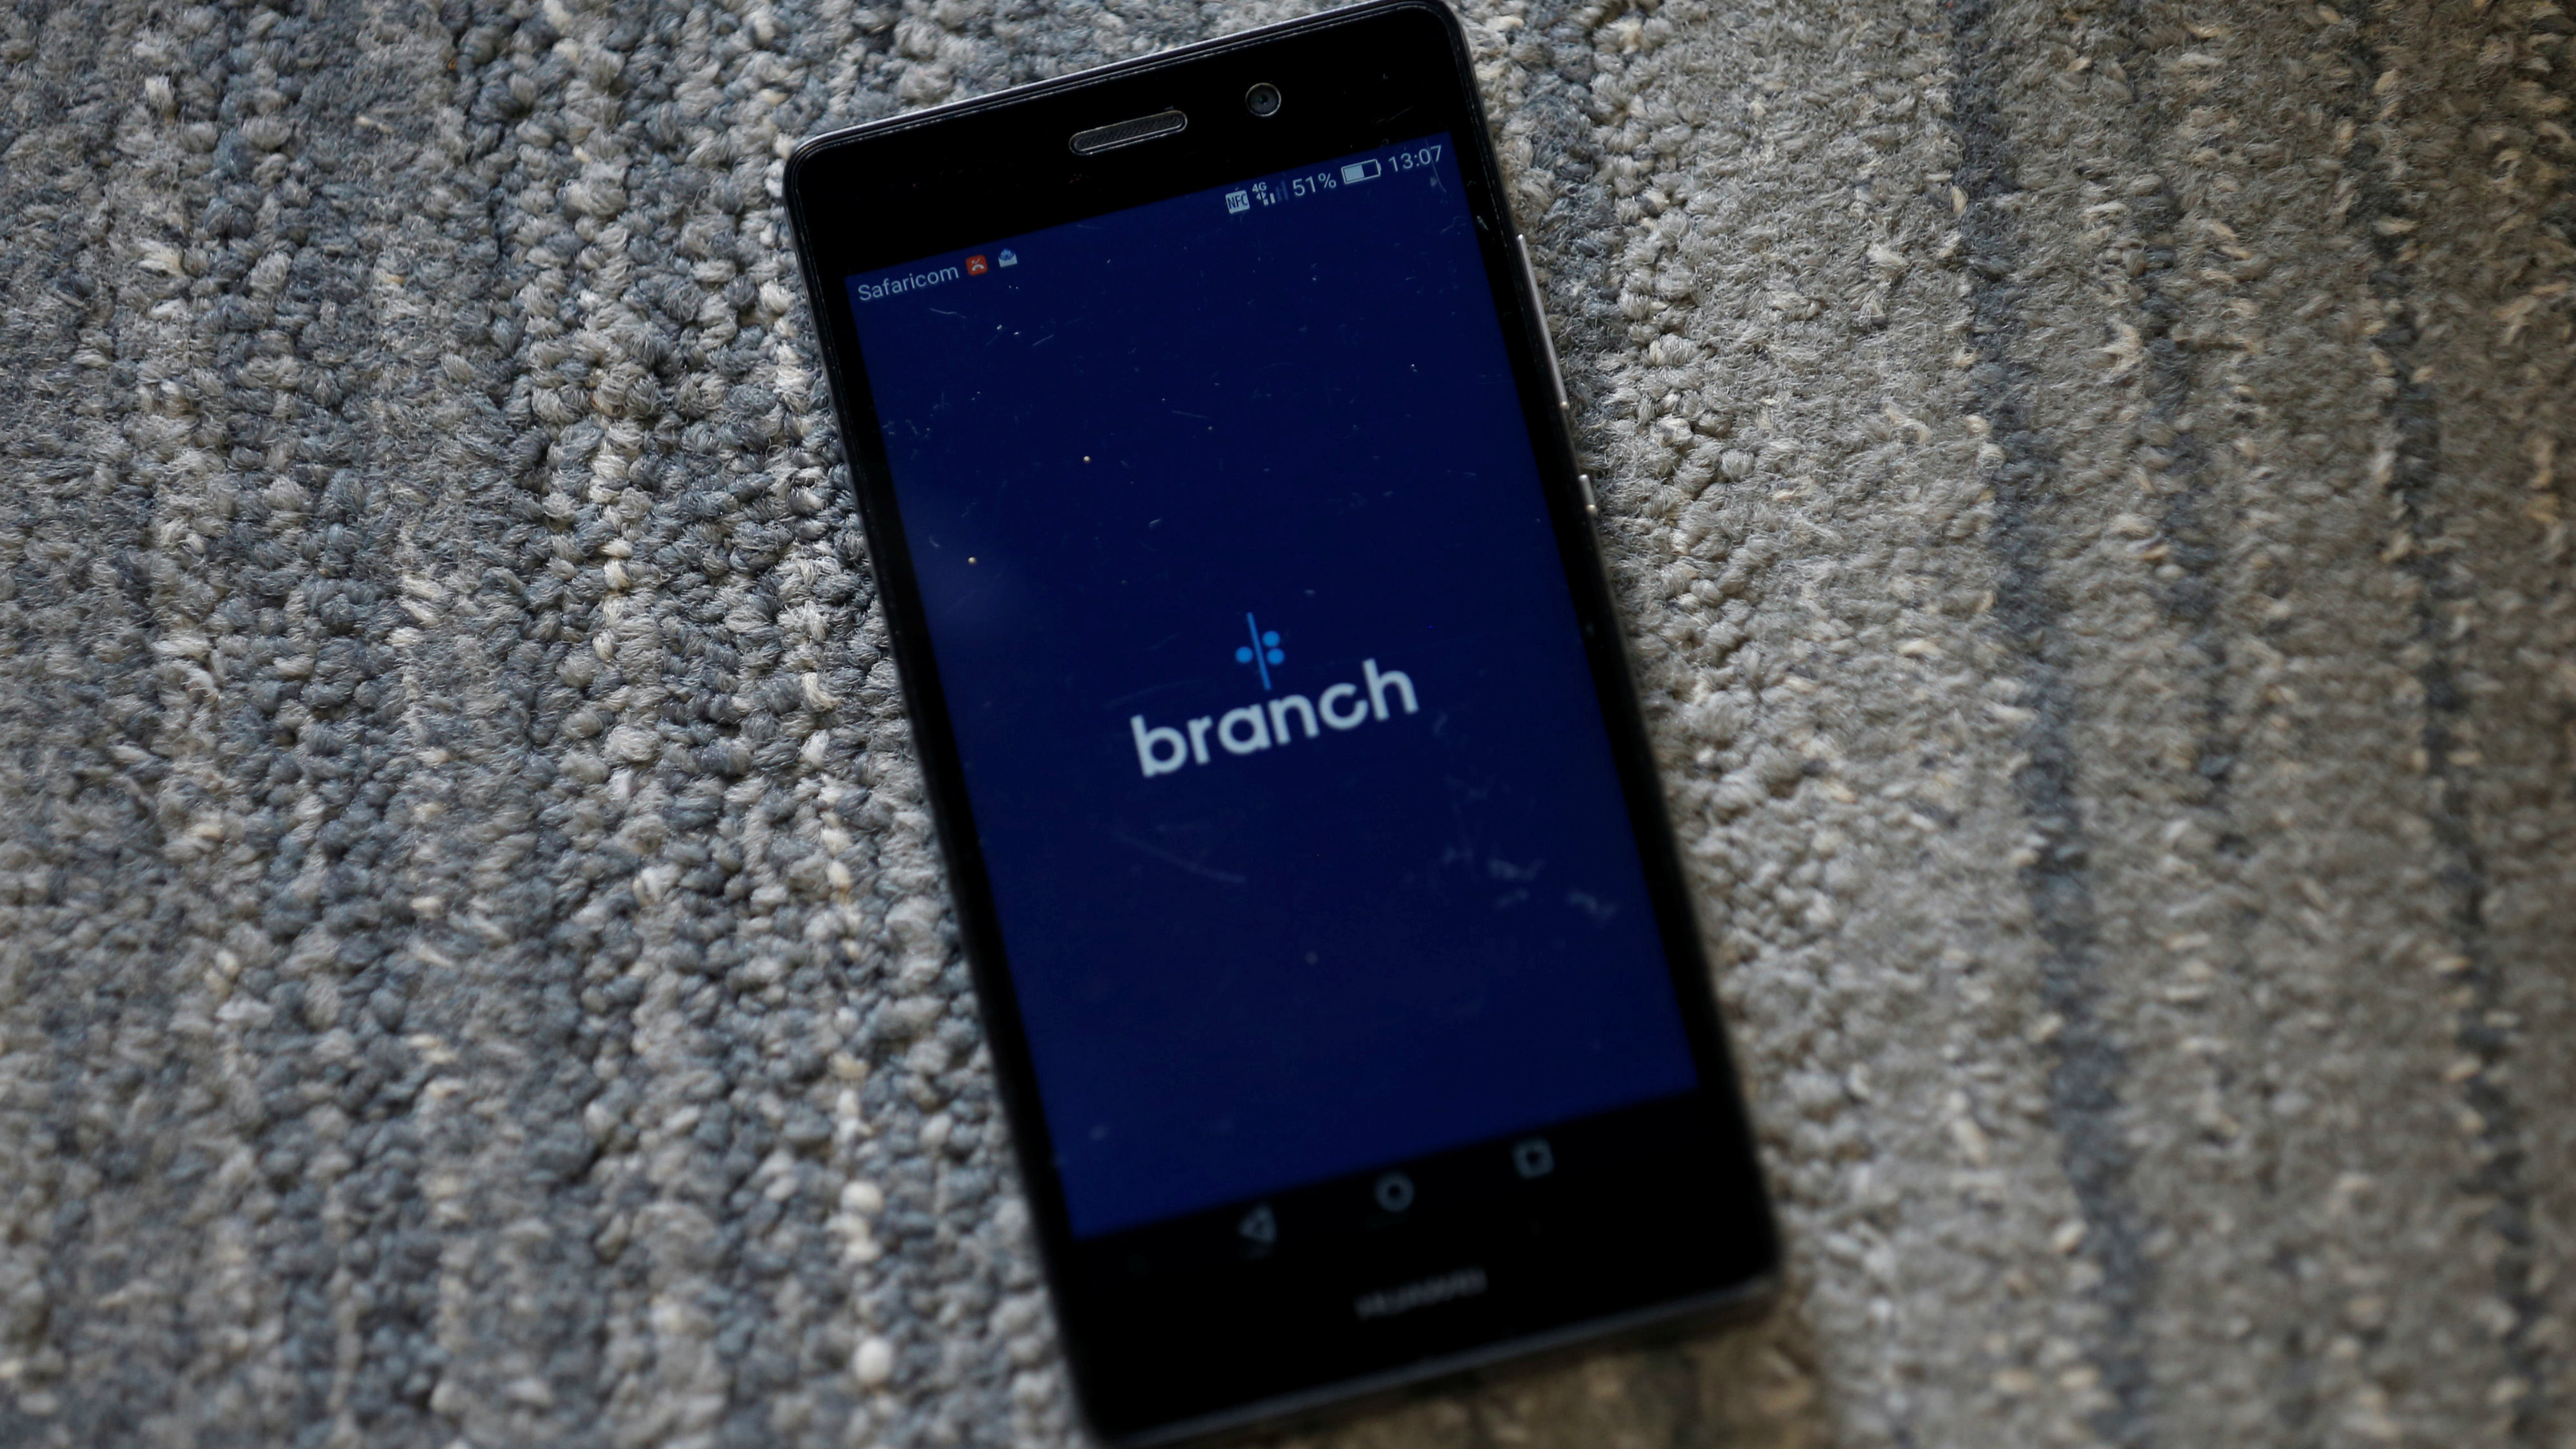 Branch app, an online financial micro lending platform is seen on a mobile phone in this photo illustration taken May 23, 2018.